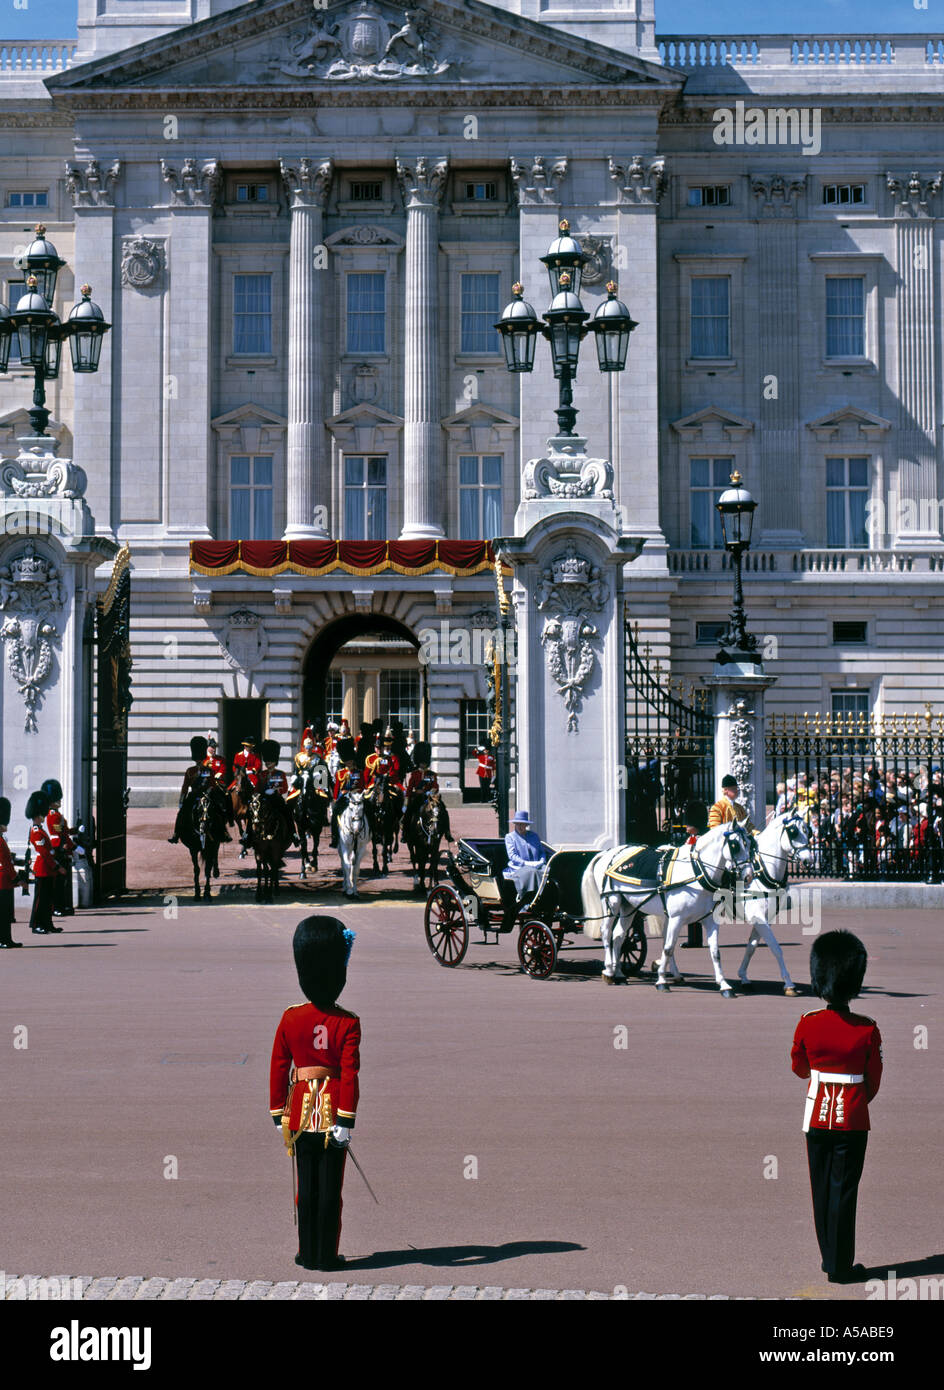 Queen leaving Buckingham Palace, London, England - Stock Image